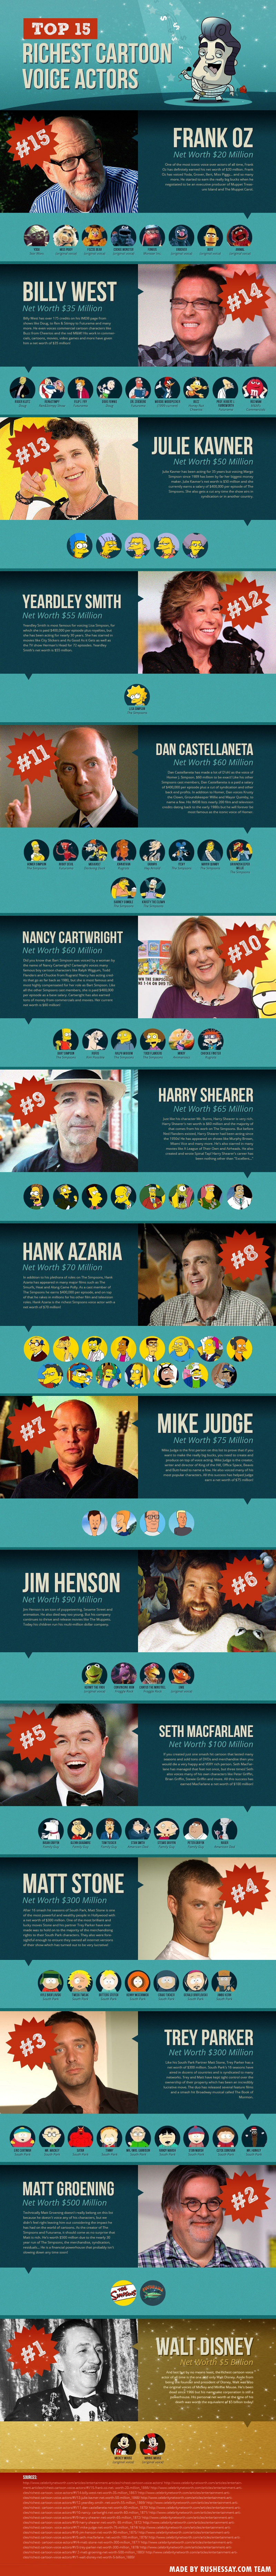 Rich-Cartoon-Voice-Actors